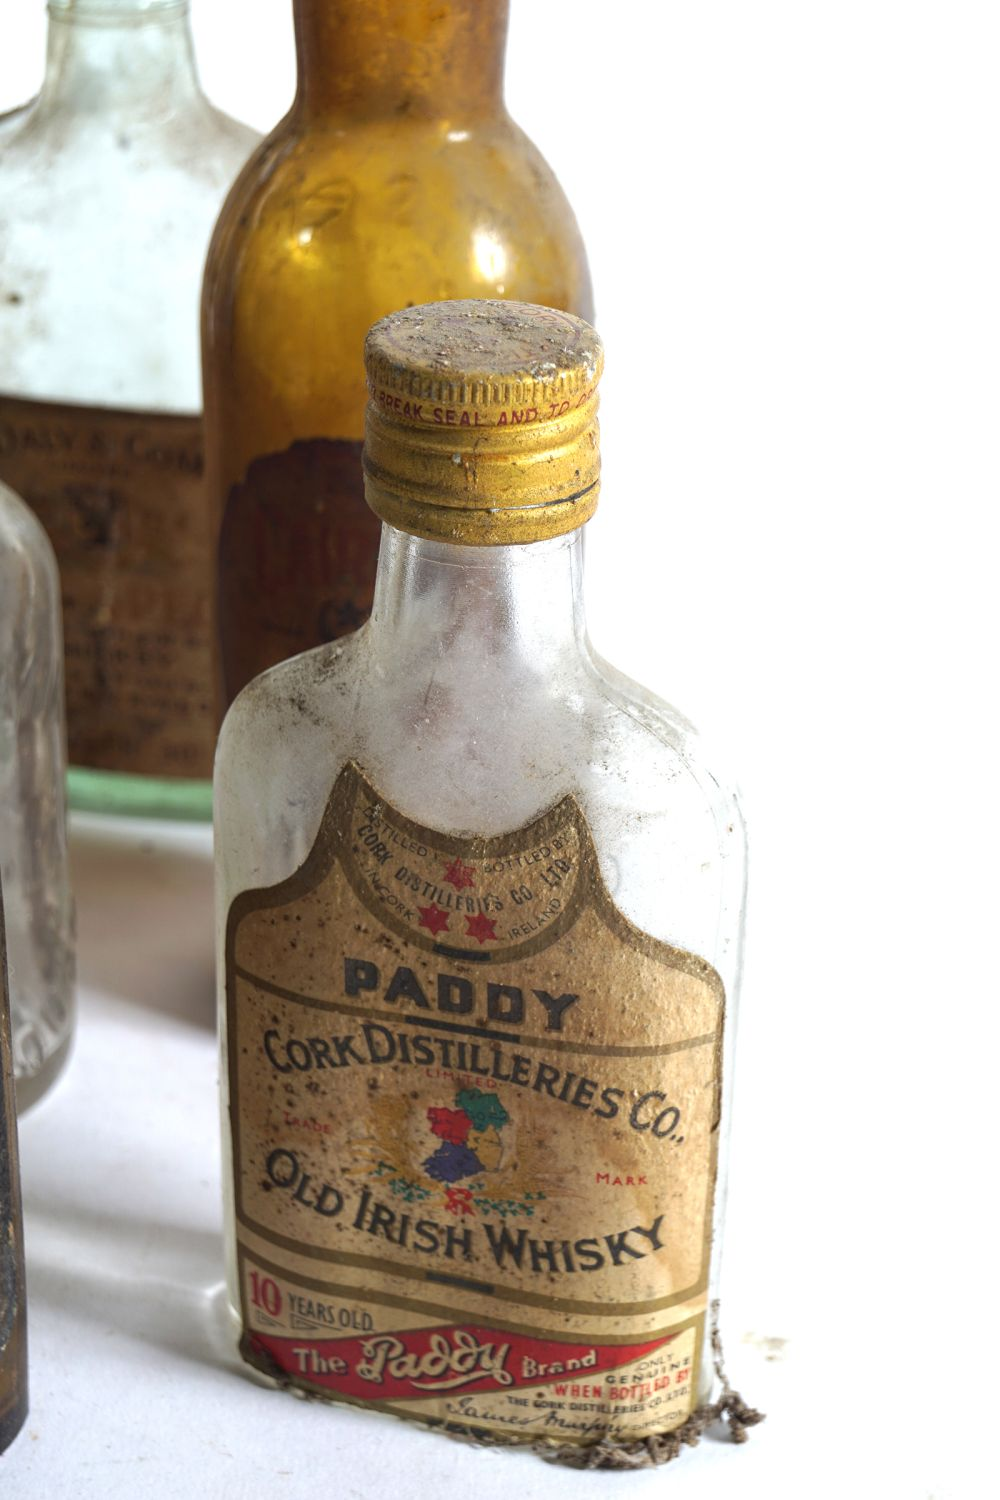 LOT OF 16 OLD WHISKEY AND BEER BOTTLES - Image 6 of 7